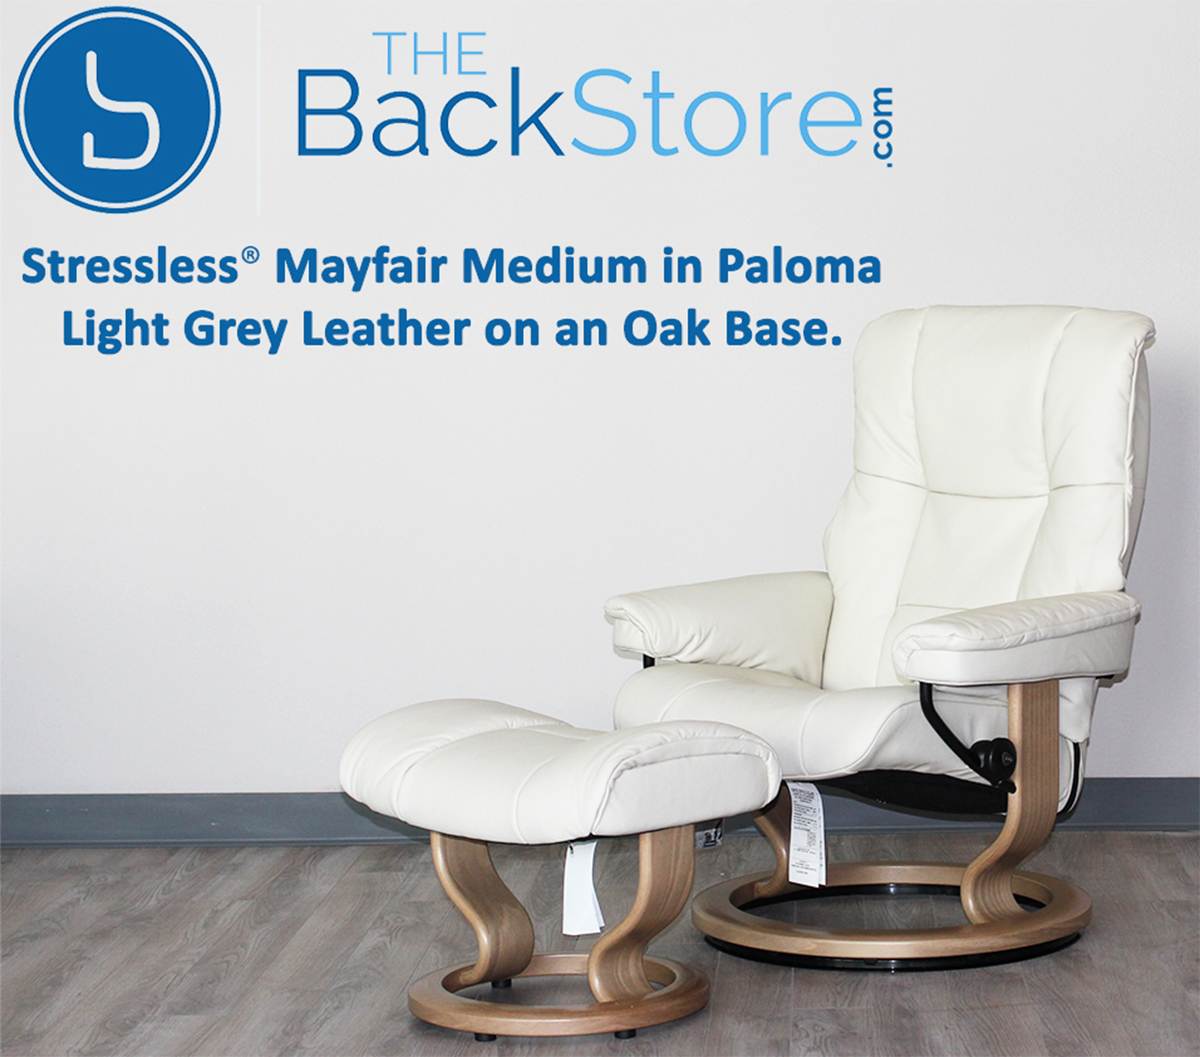 Stressless Mayfair Paloma Light Grey Leather Recliner